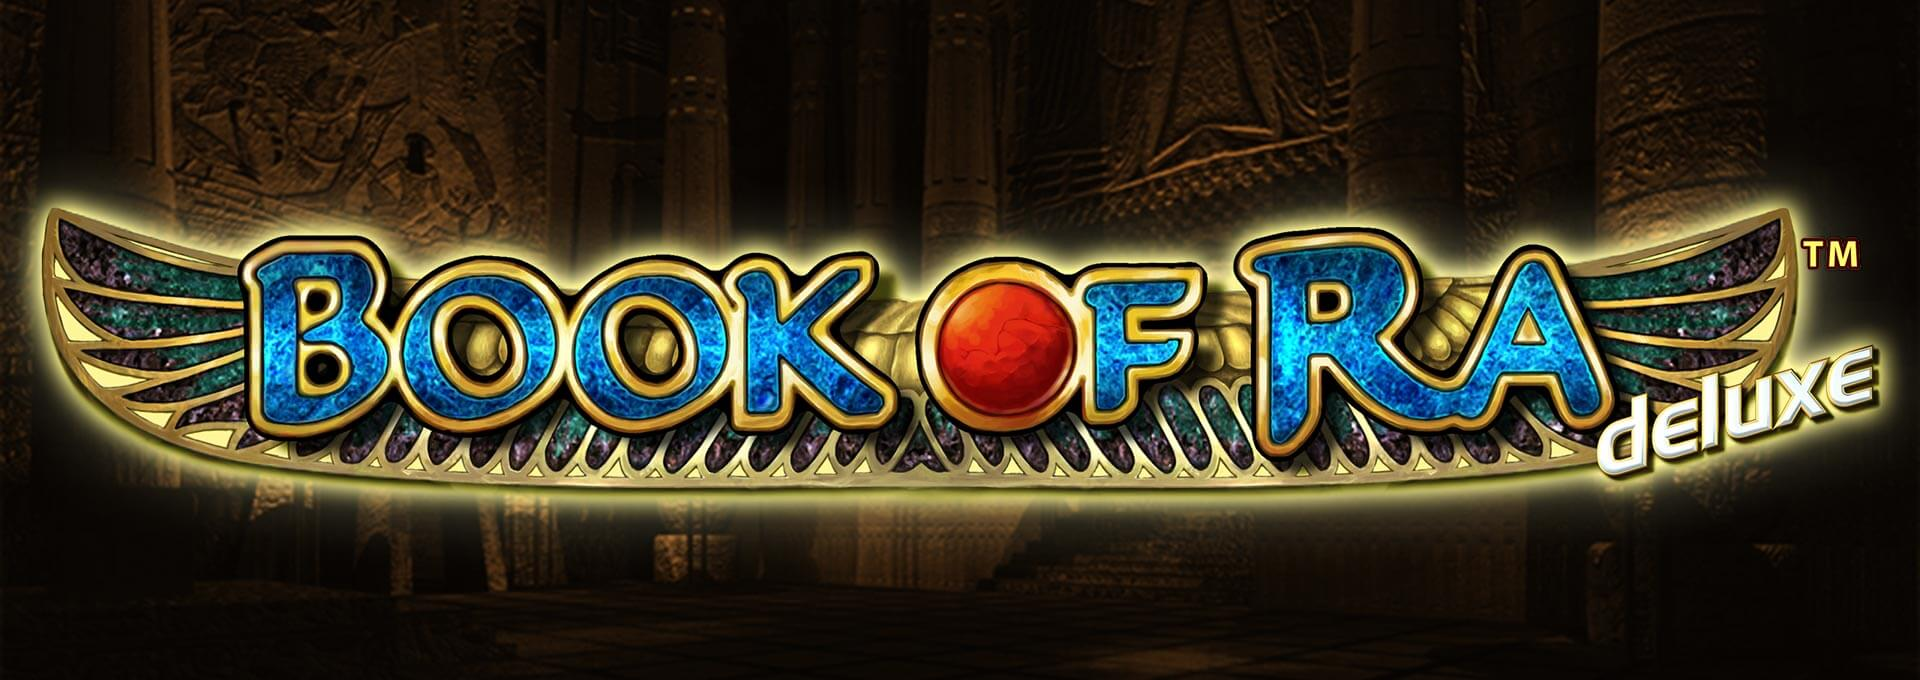 free online casino slots book of ra deluxe